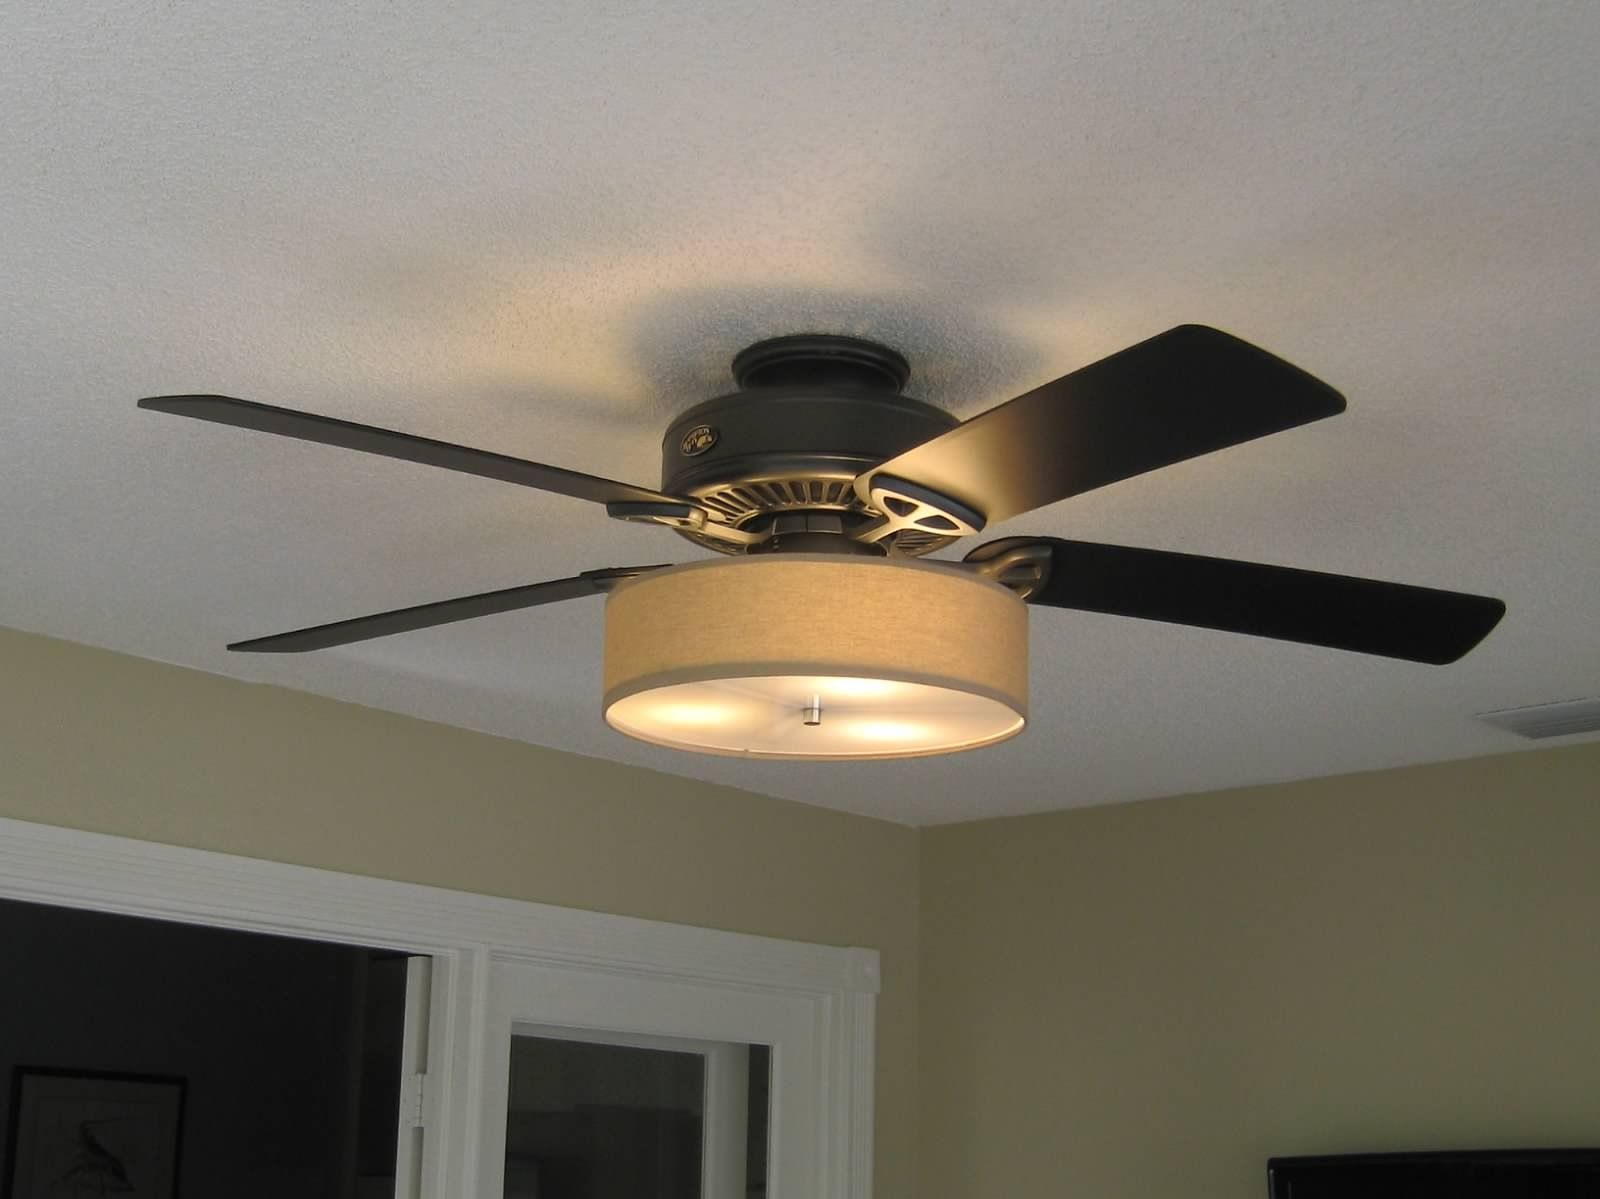 25 reasons to install low profile ceiling fan light kit warisan 25 reasons to install low profile ceiling fan light kit arubaitofo Image collections